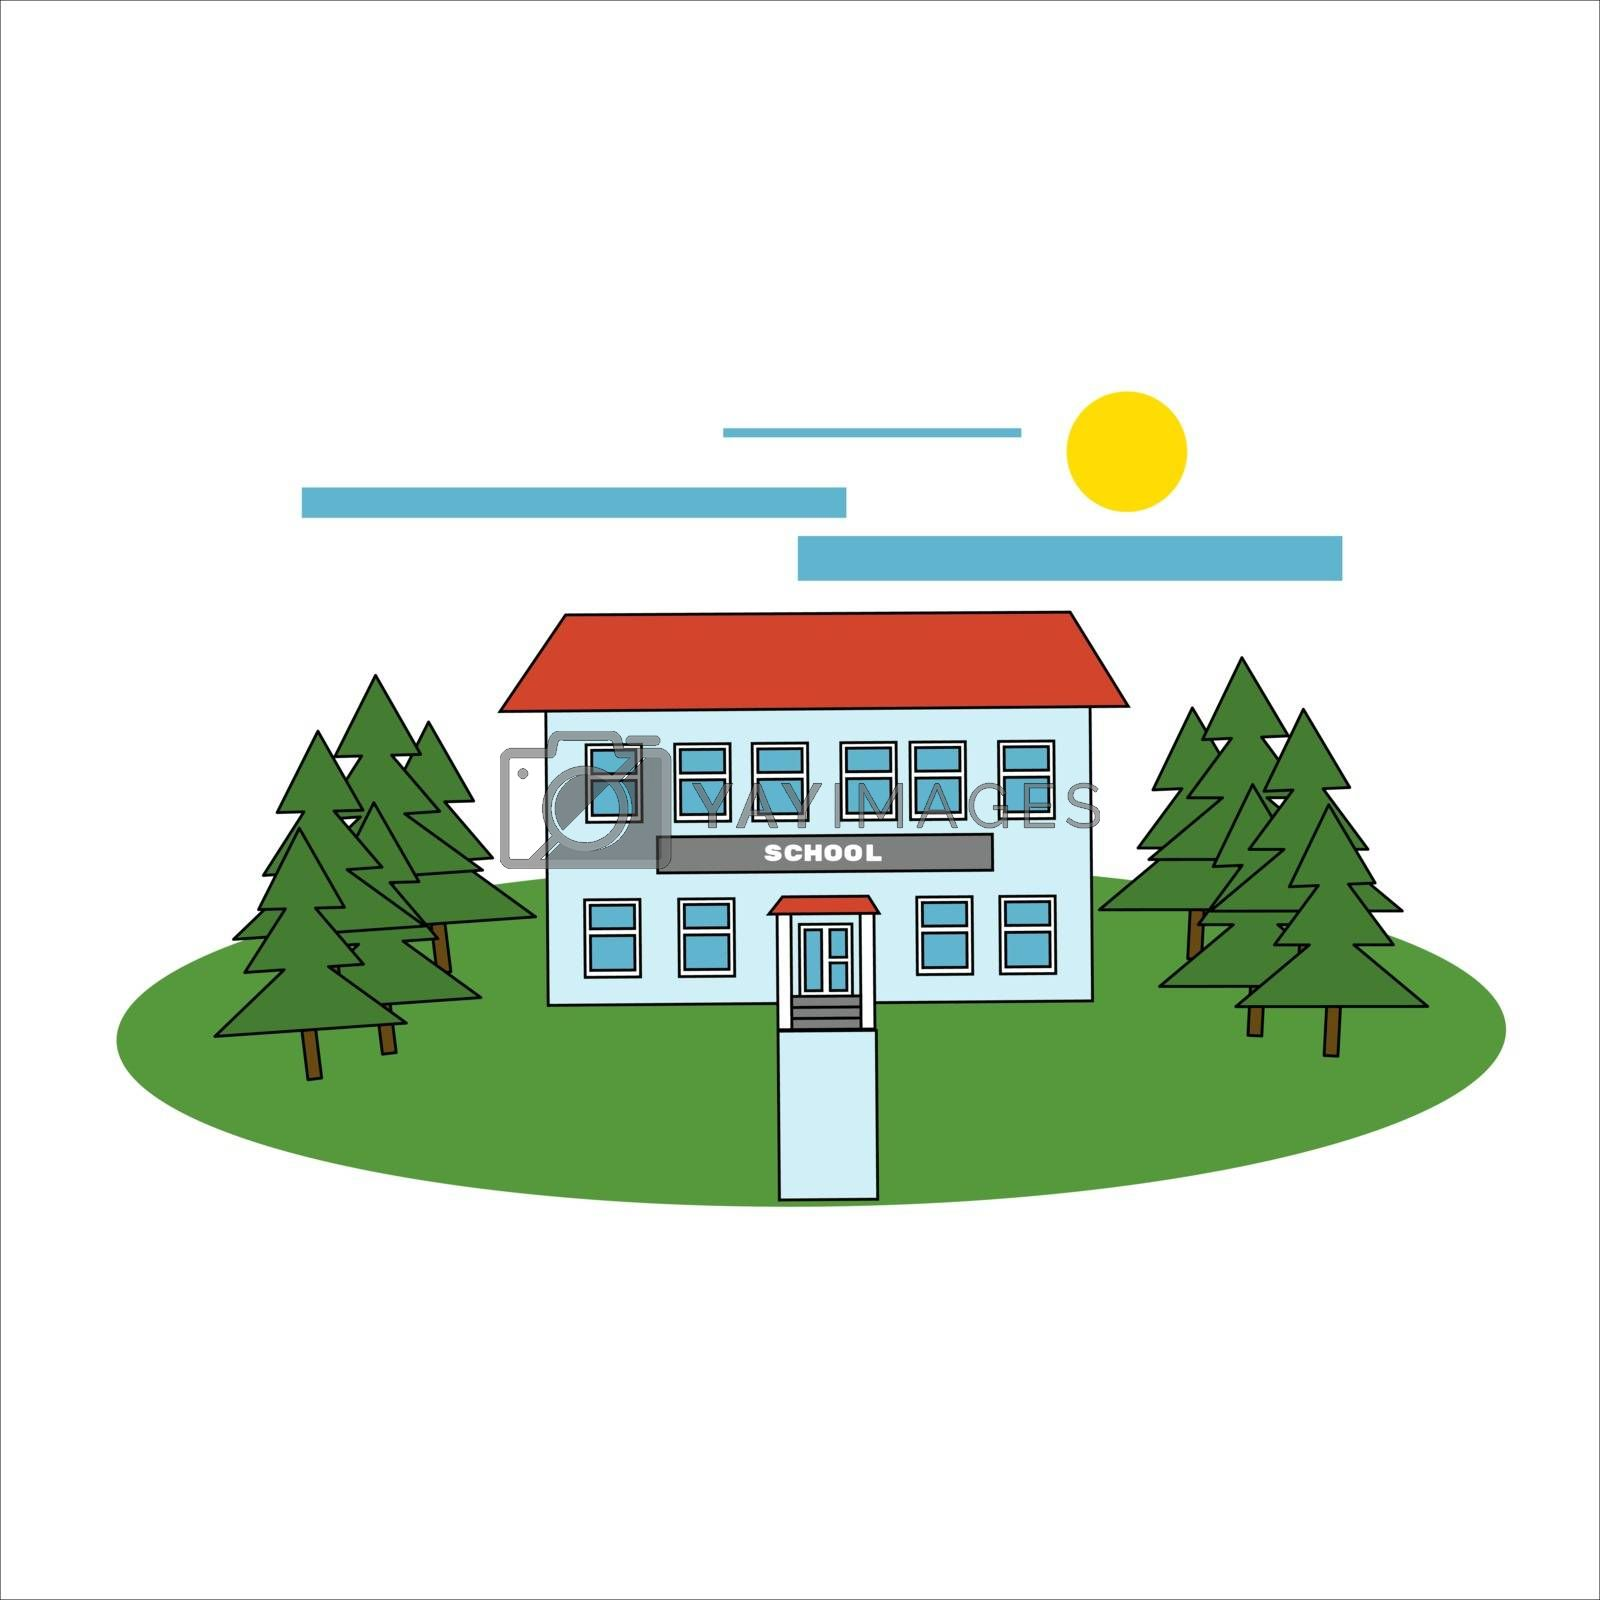 School building and bus. Vector illustration in filled outline style